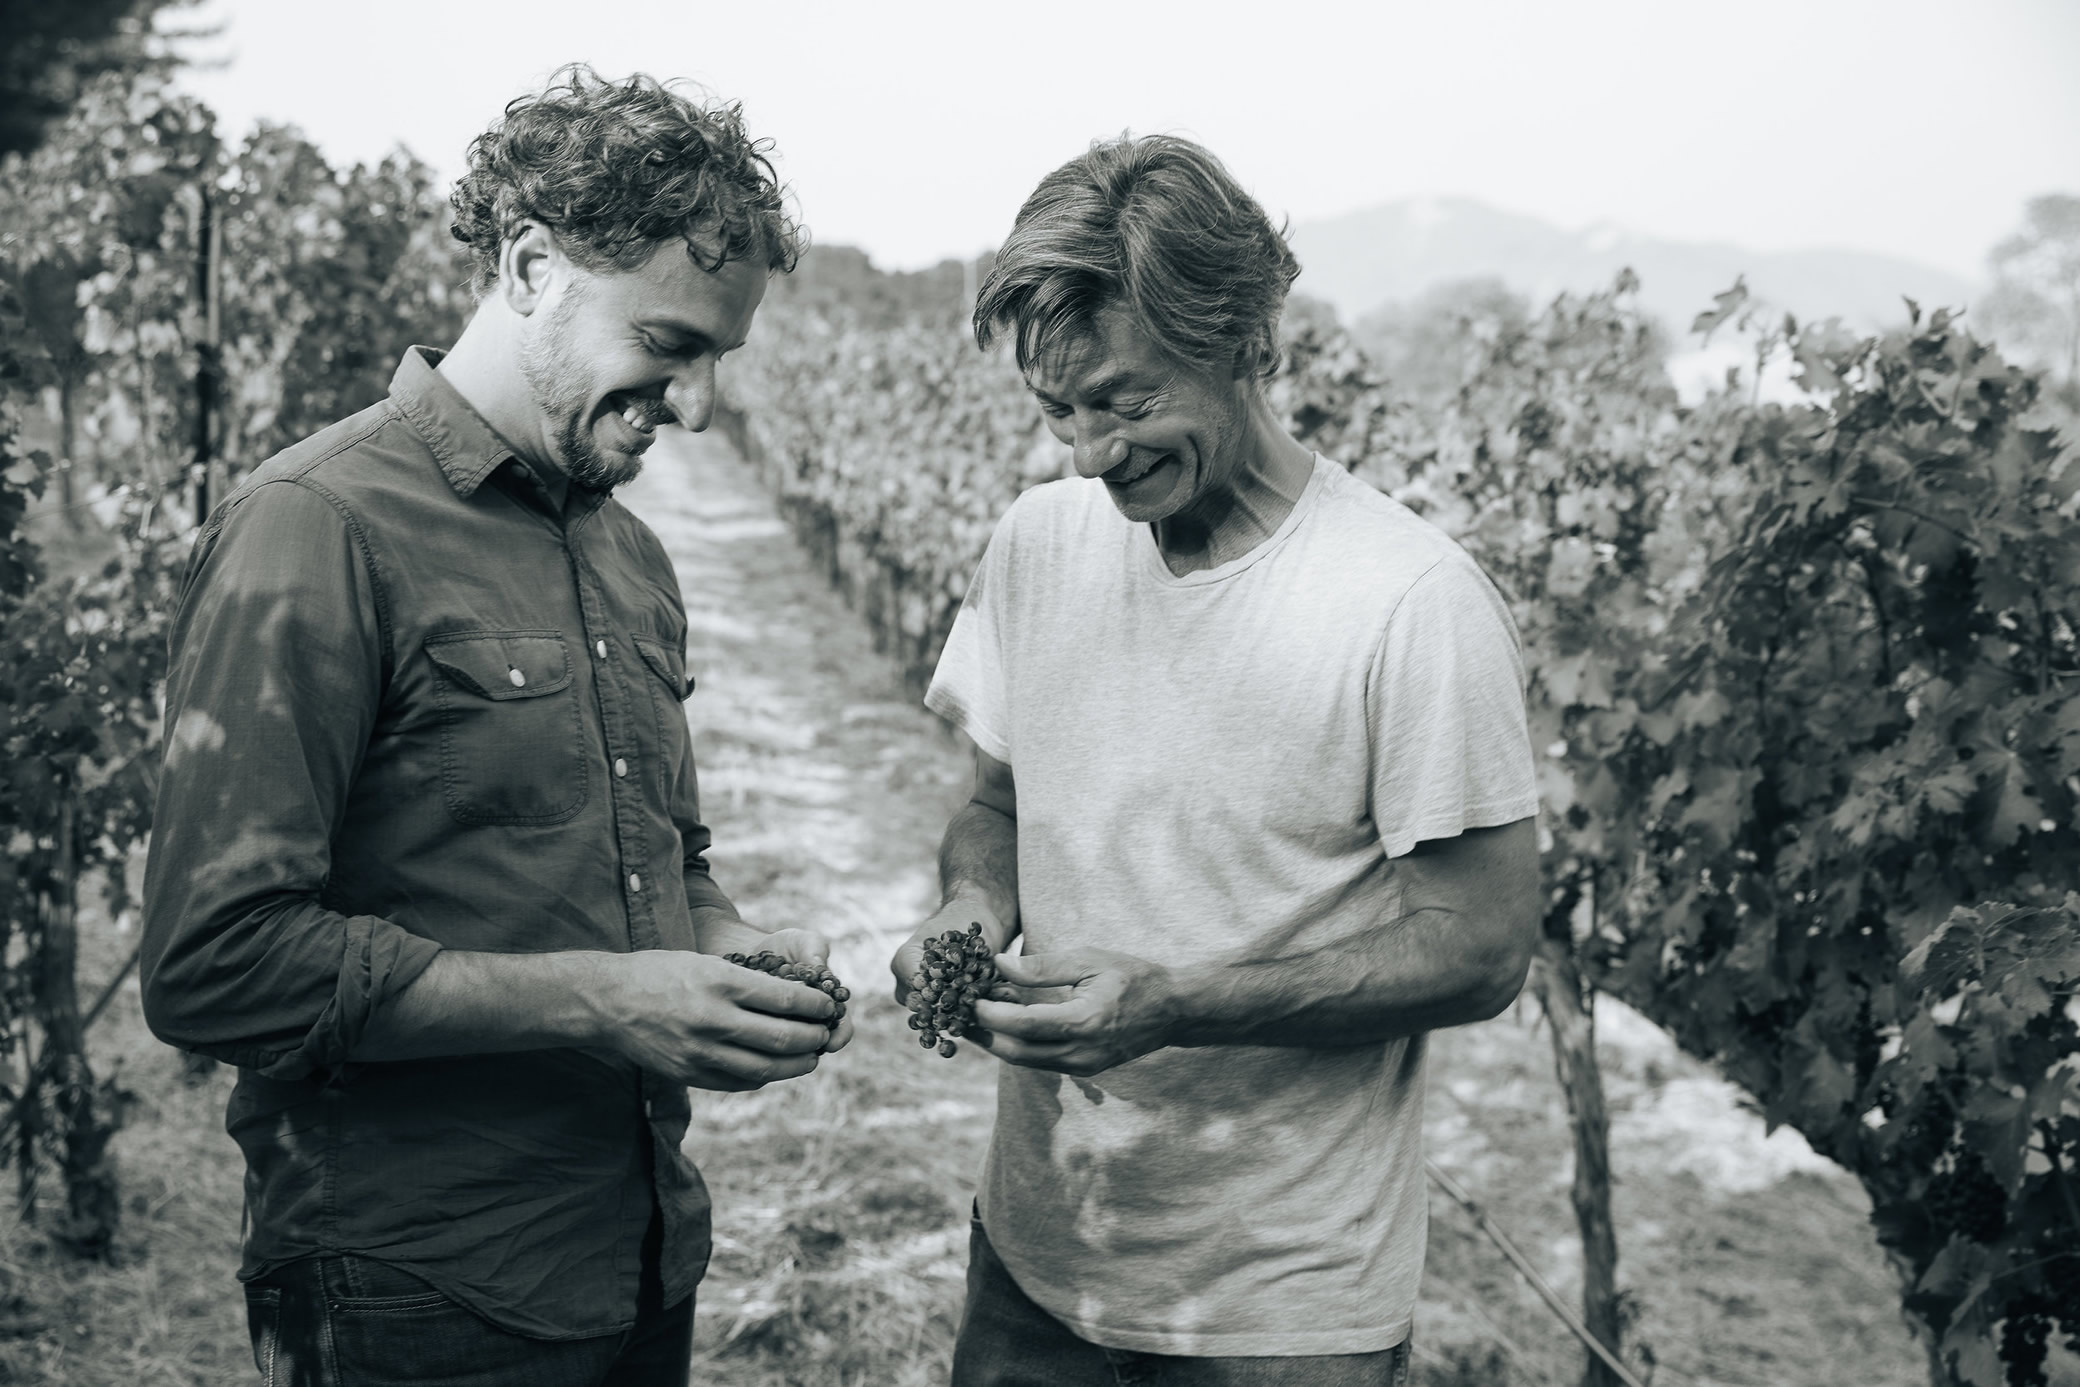 Diego Roig And John Boich Inspecting Grapes